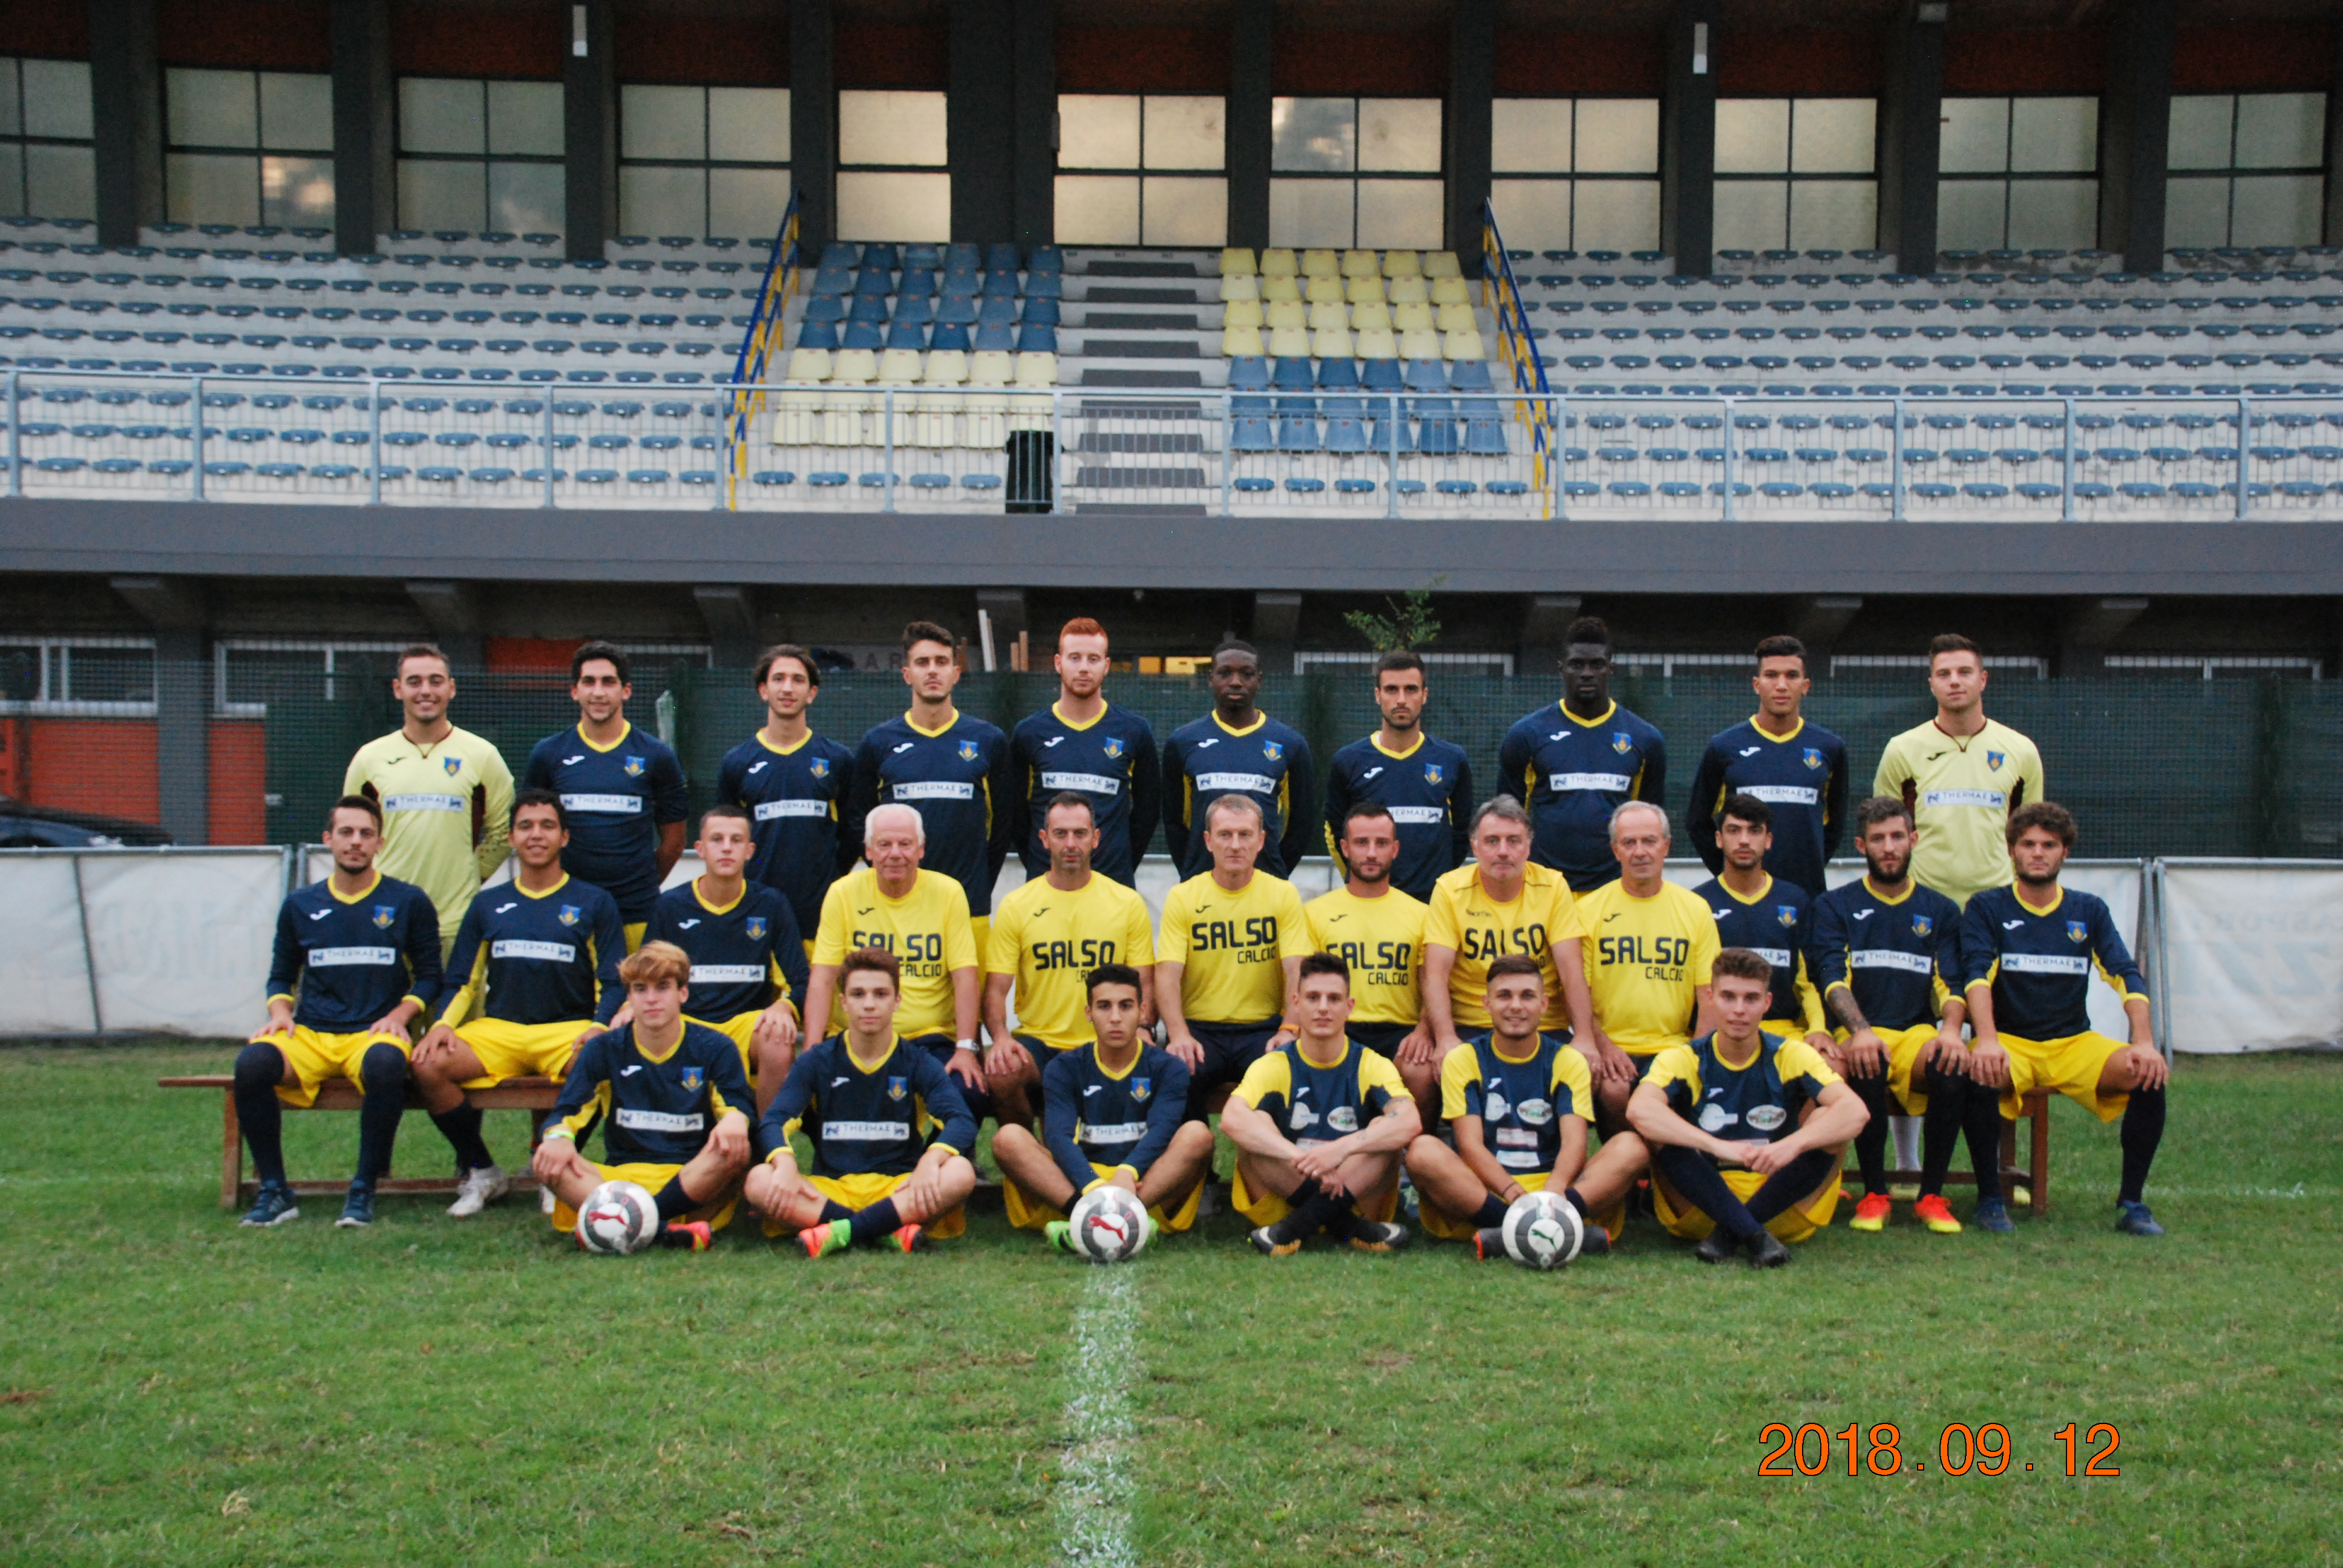 Bagnolese-Salso 1-1